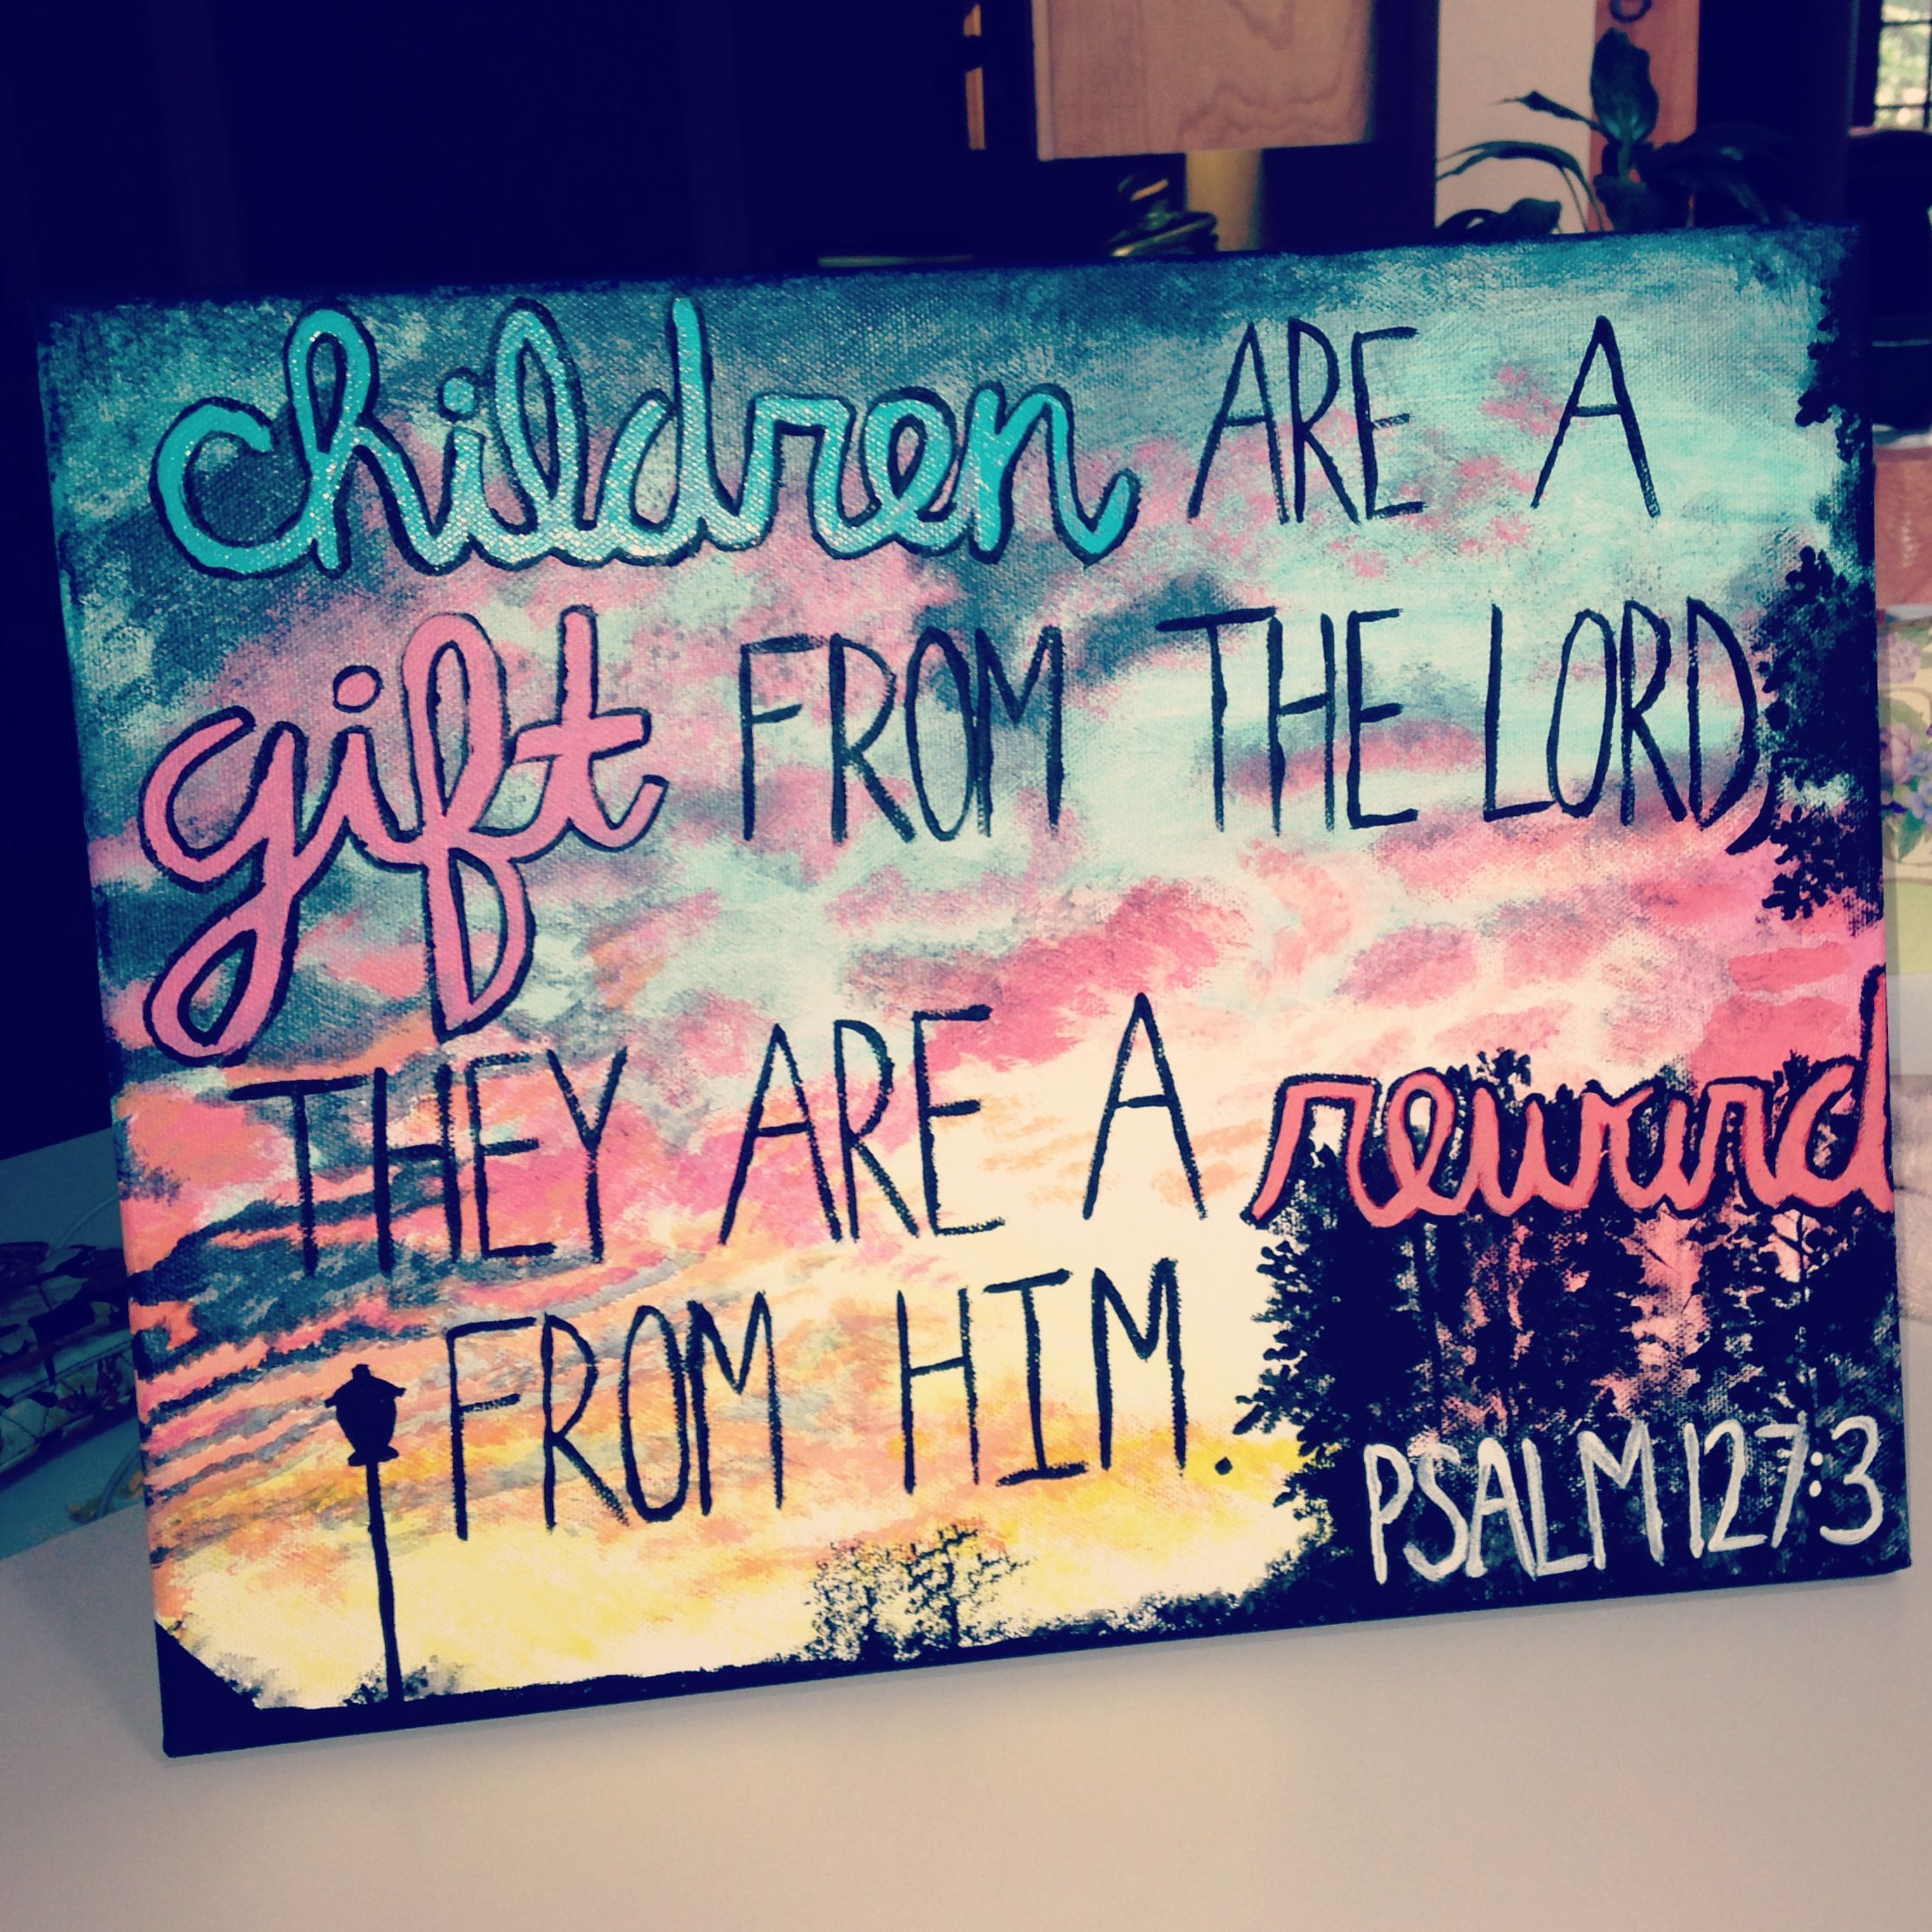 Spiritual Baby Shower Quotes: Painting In Acrylic With Bible Verse, Great For Baby